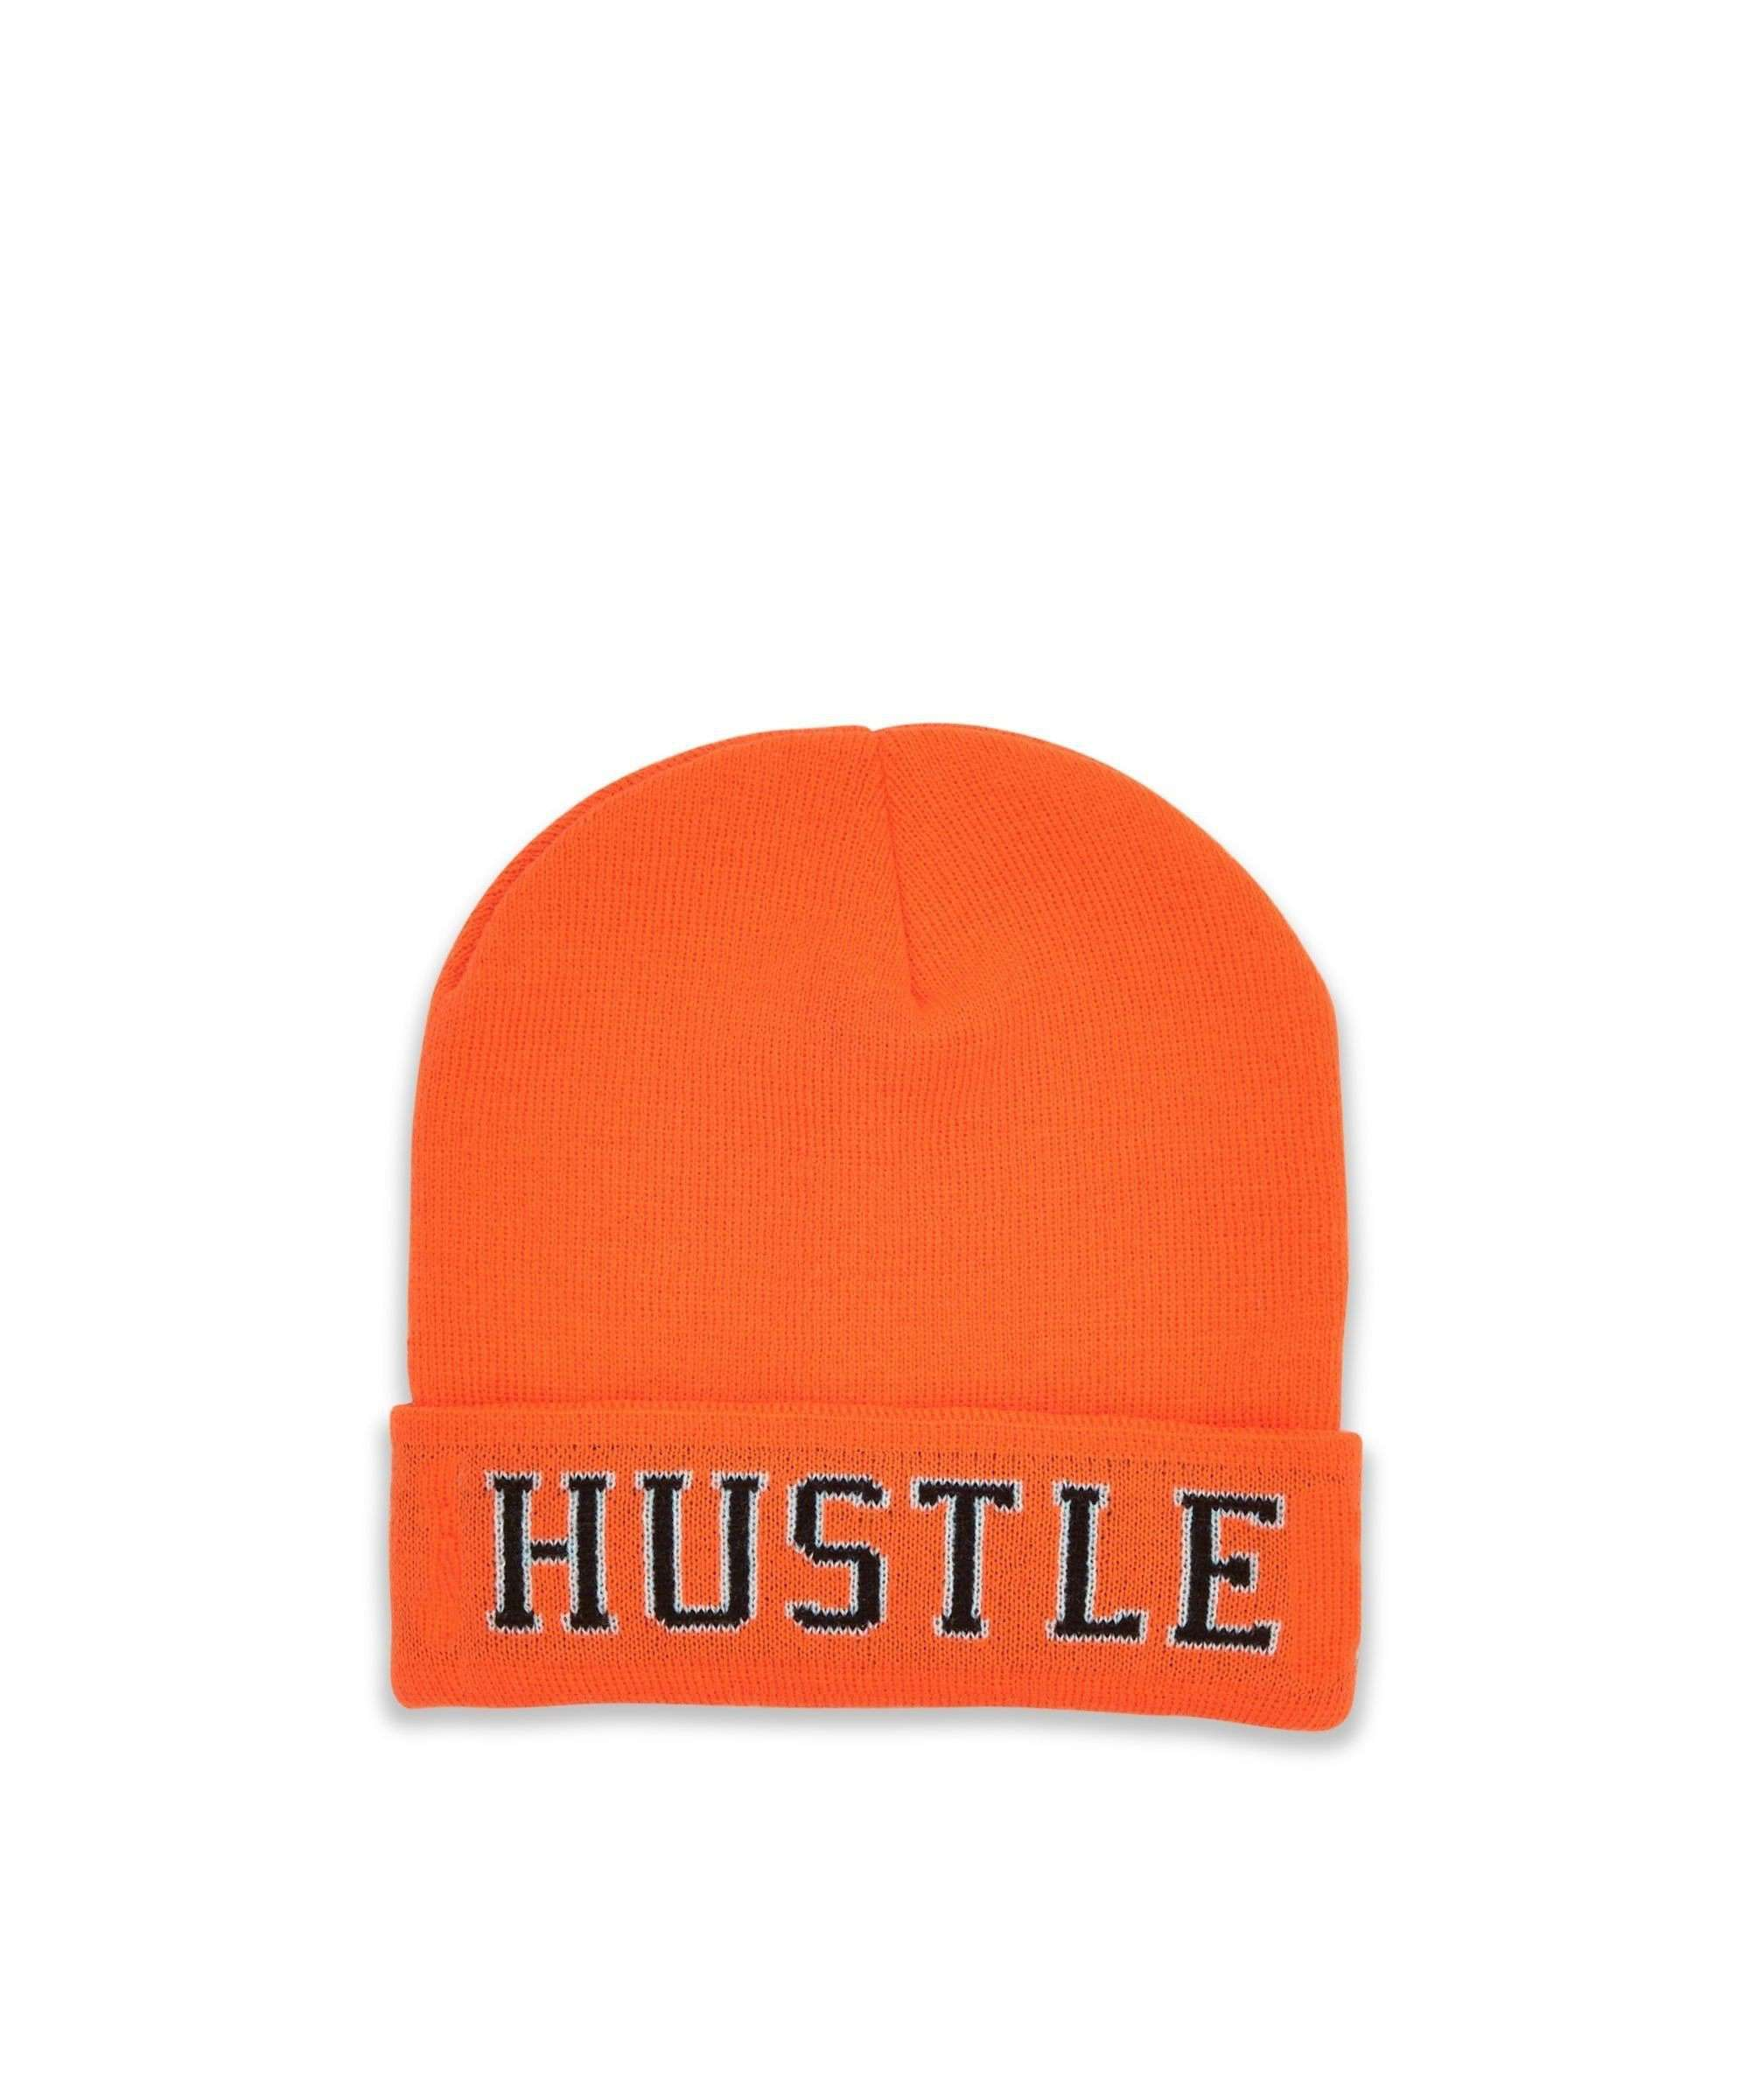 HUSTLE BEANIE Reason Clothing